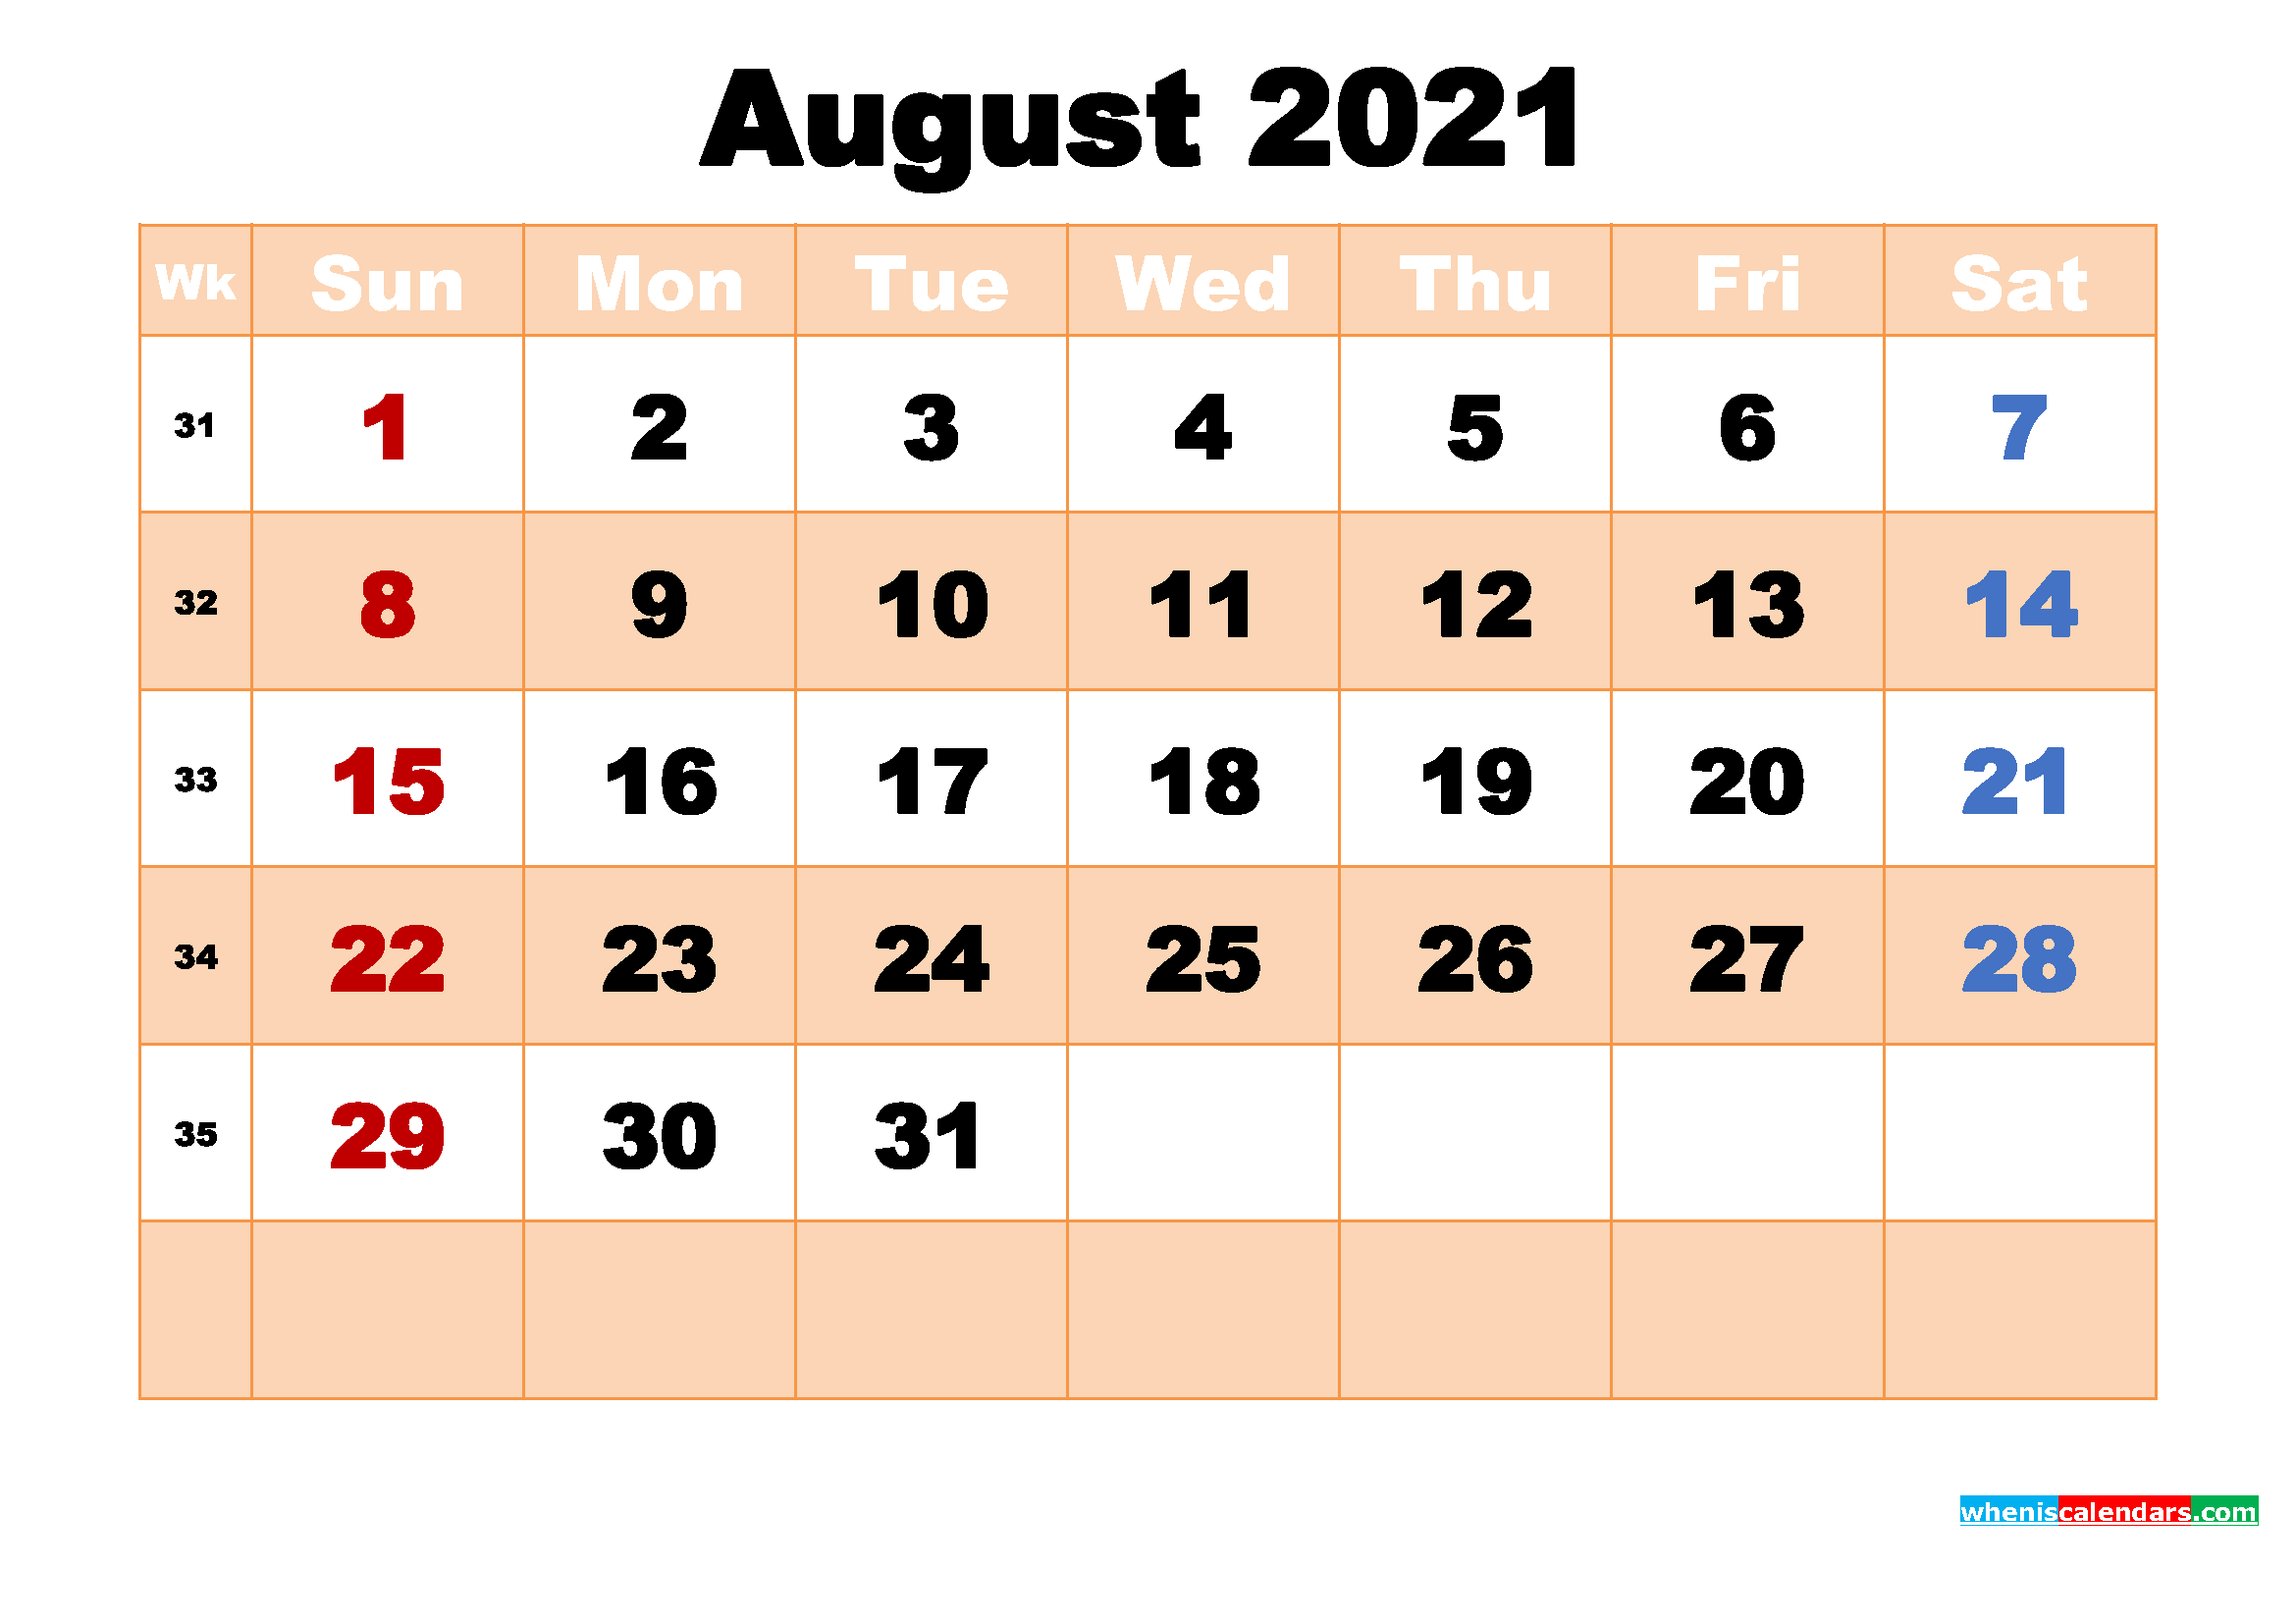 August 2021 Calendar with Holidays Wallpaper